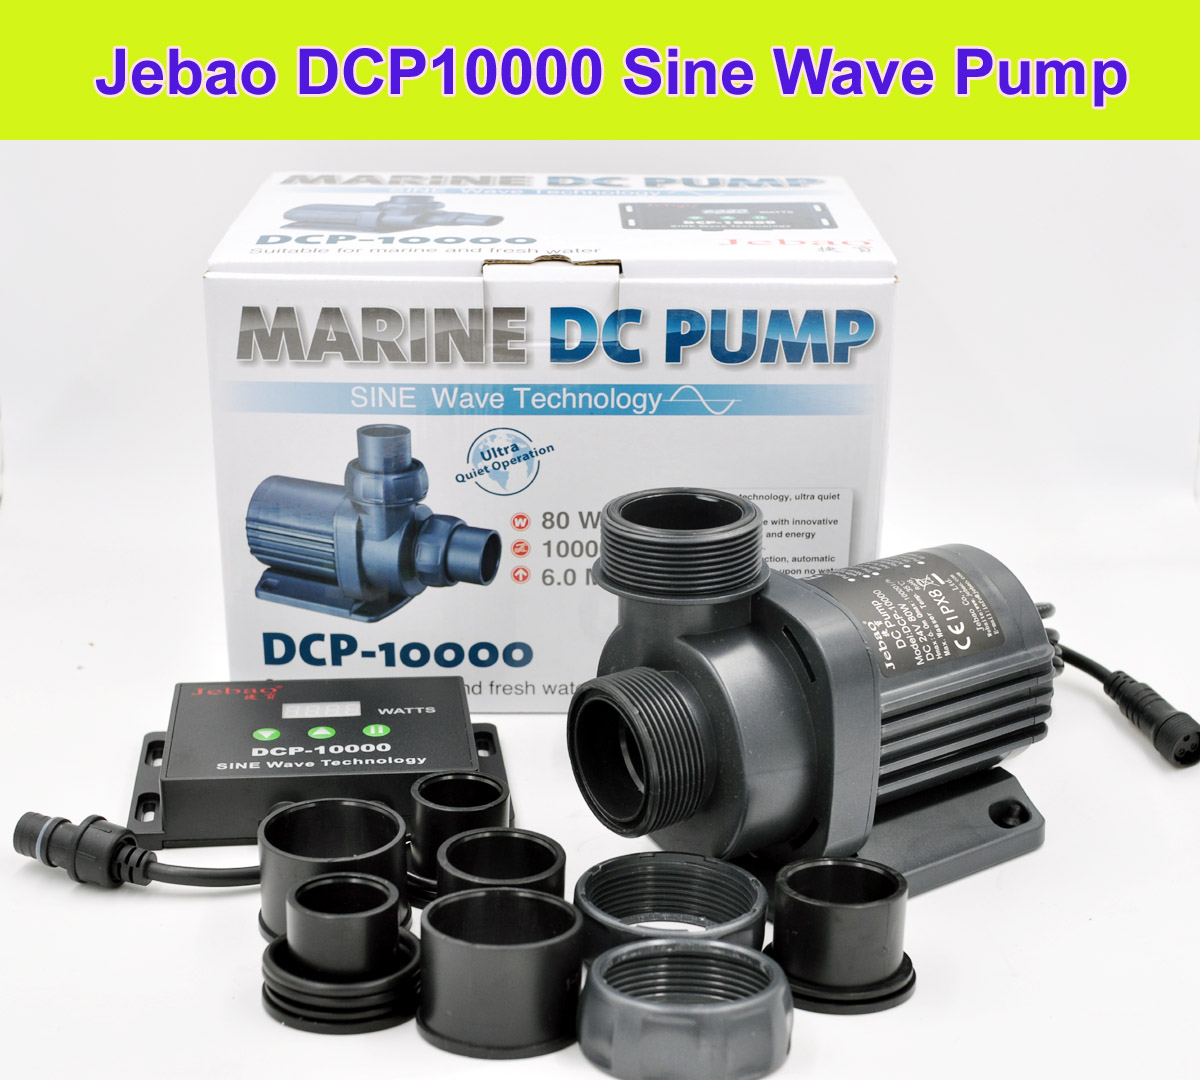 Fish & Aquariums Jebao Jecod Dcp Series Maring Dc Silent Wave Return Submersible Pump Controller